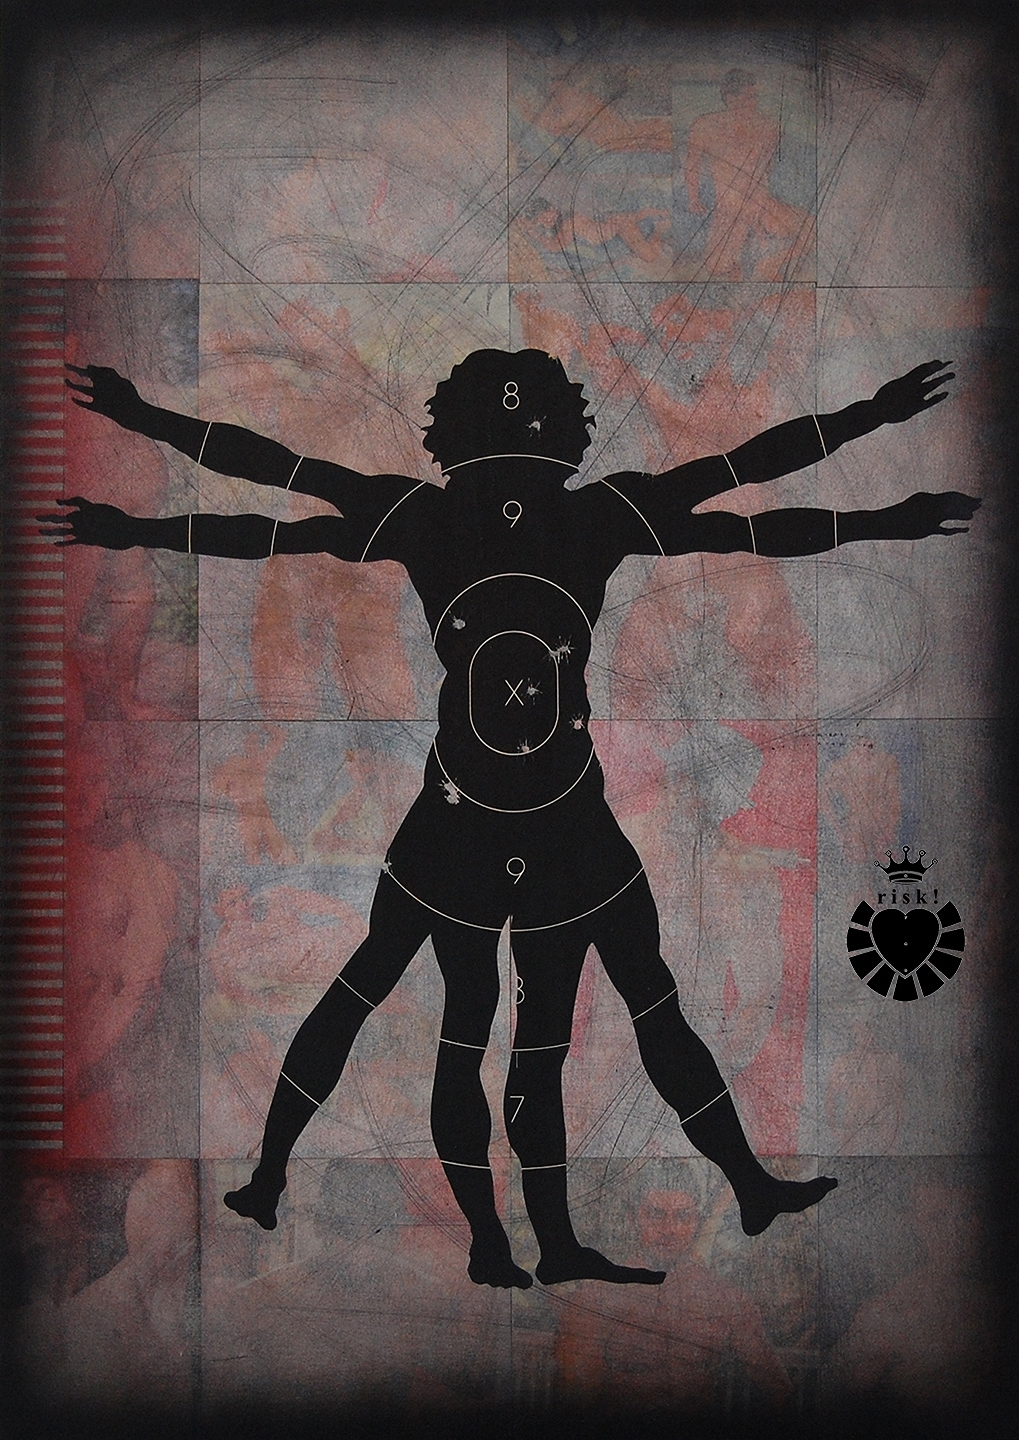 Vitruvian Risk / 36 x 25 / Original Sold / Prints Available